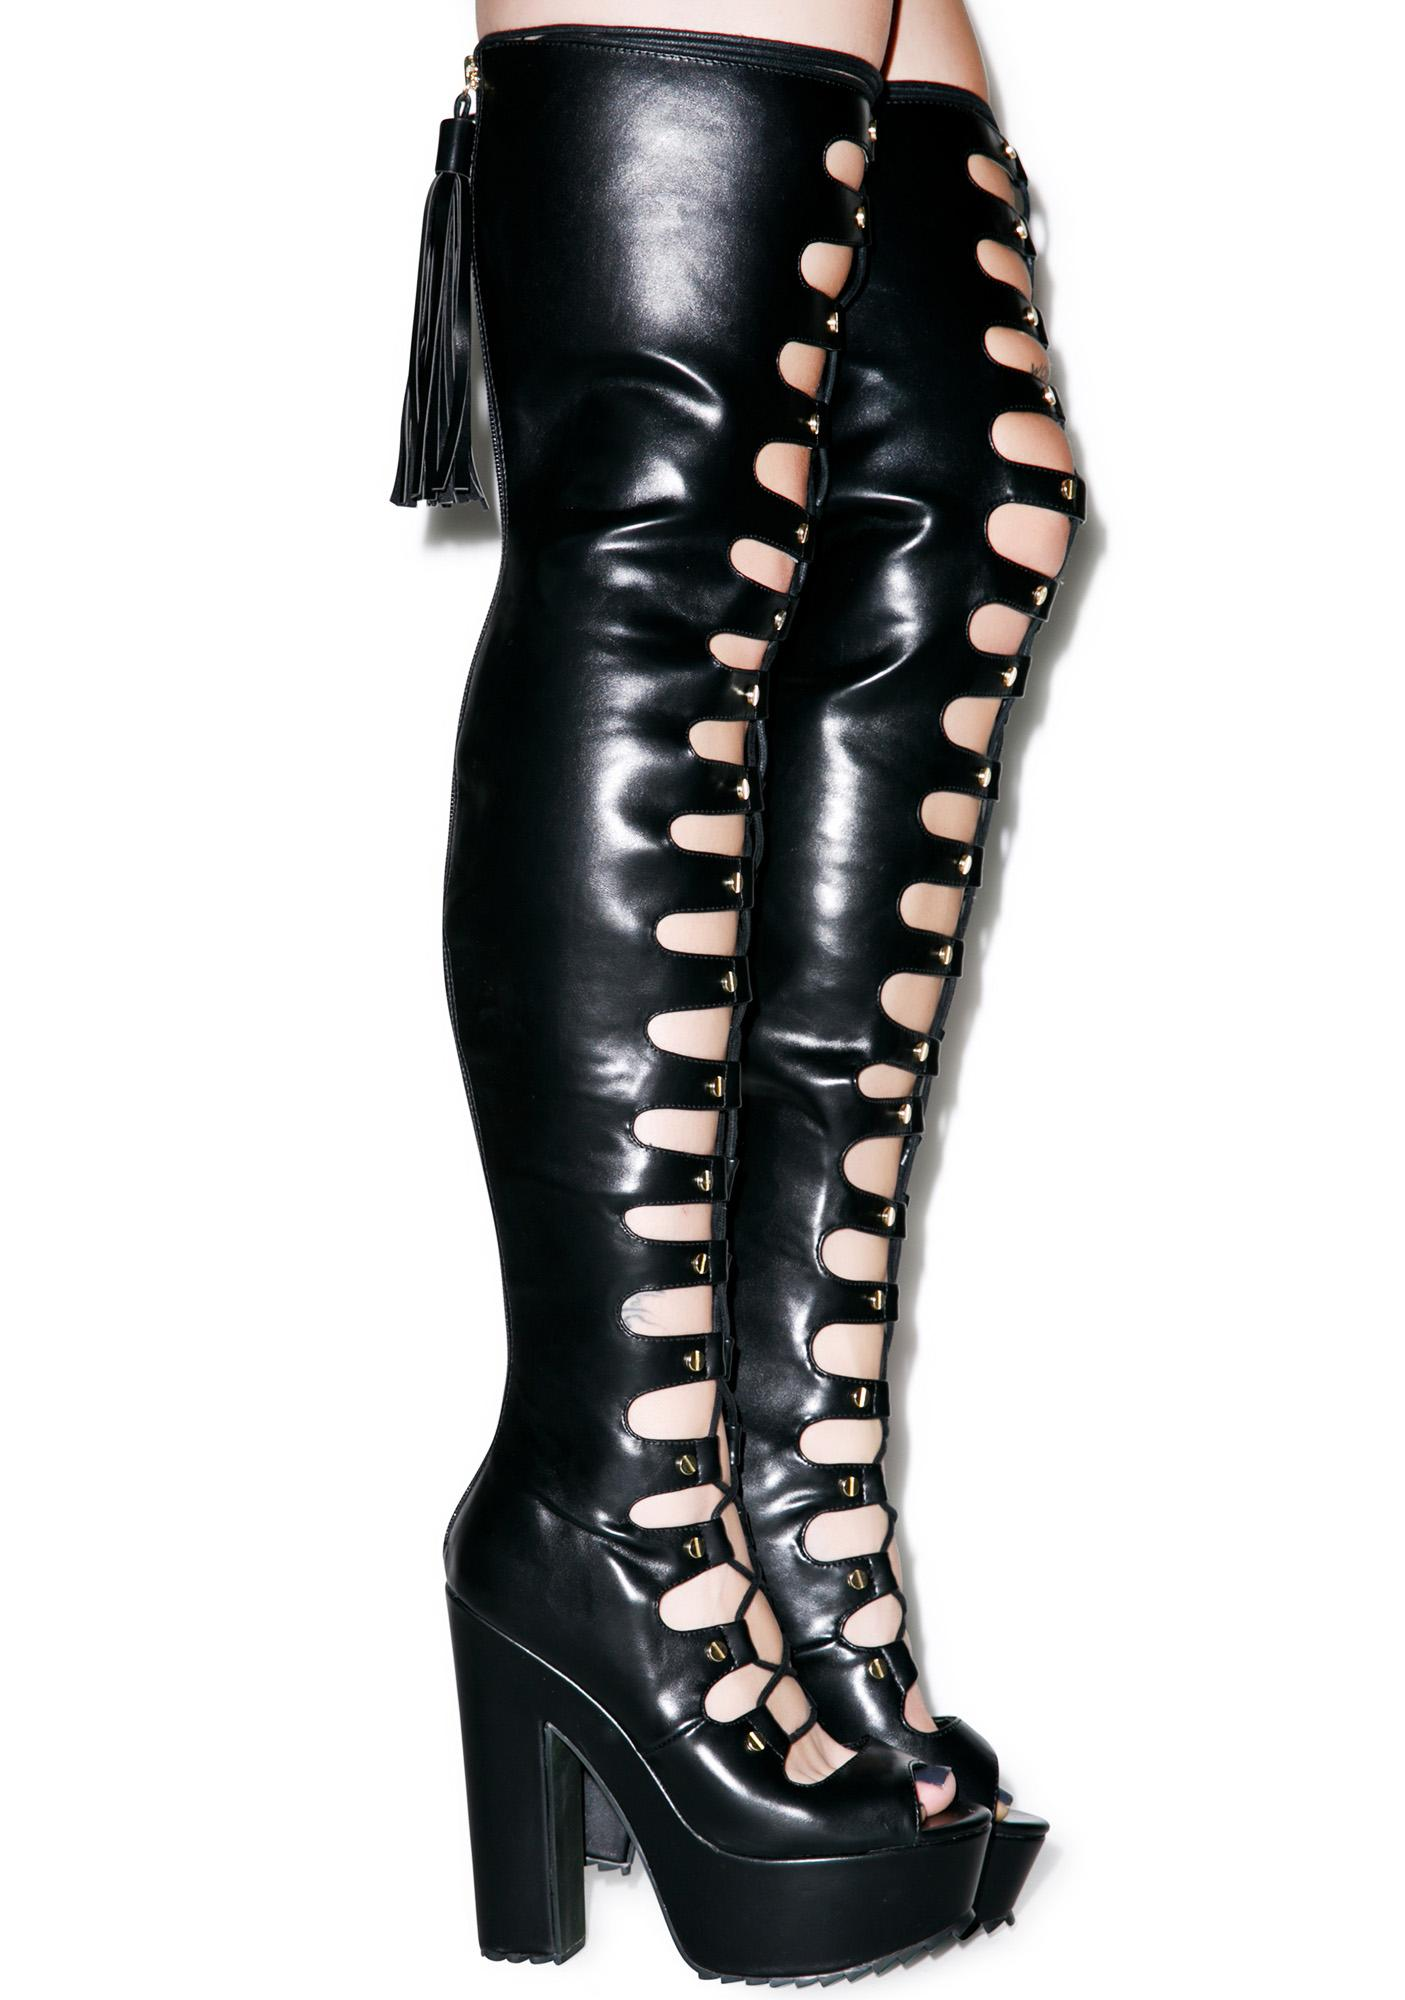 Anarchy Lace Up Platform Heels